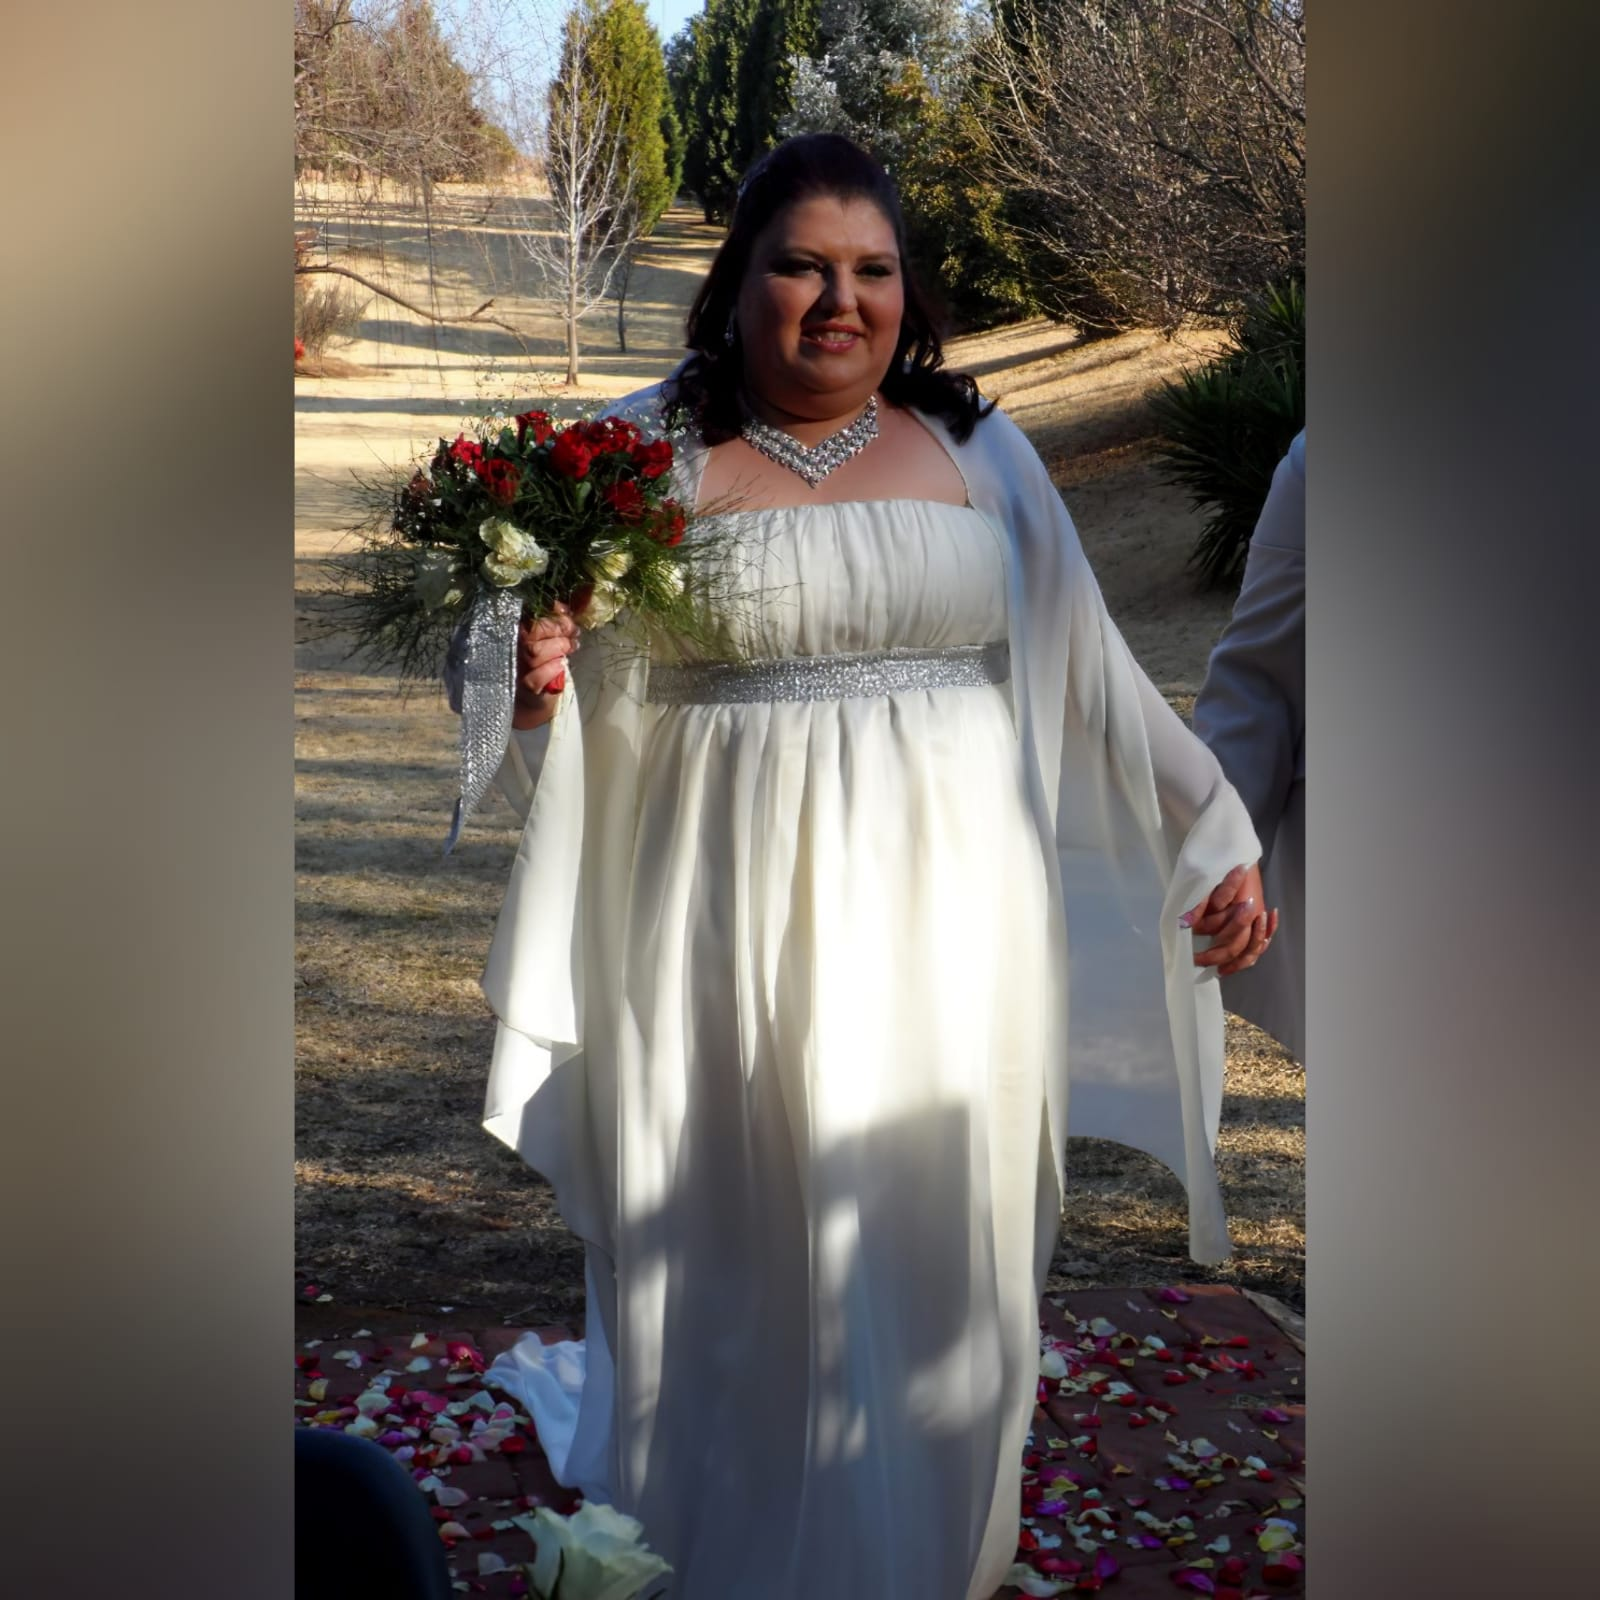 Ivory empire fit flowy plus size wedding dress 1 an ivory, empire fit flowy plus size wedding dress with a pleated straight, boob tube bust line. An ivory chiffon train and bust line silver detail finish this wedding dress. A shoulder chiffon shawl compliments the bride and the grooms shirt made by marisela veludo too.